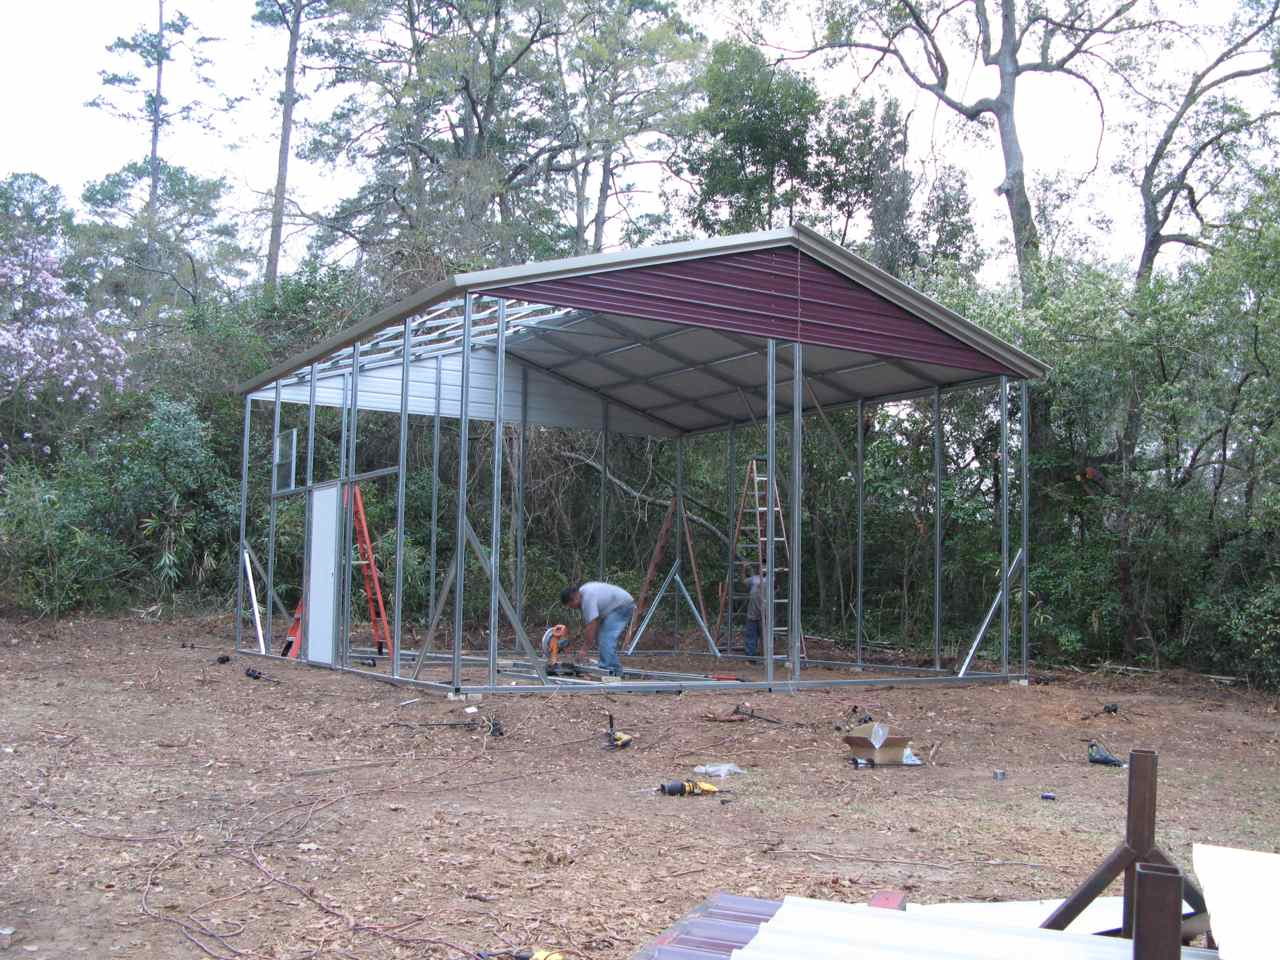 Soccer Field In My Backyard : Last summer I constructed a metal pole building in my back yard Mine